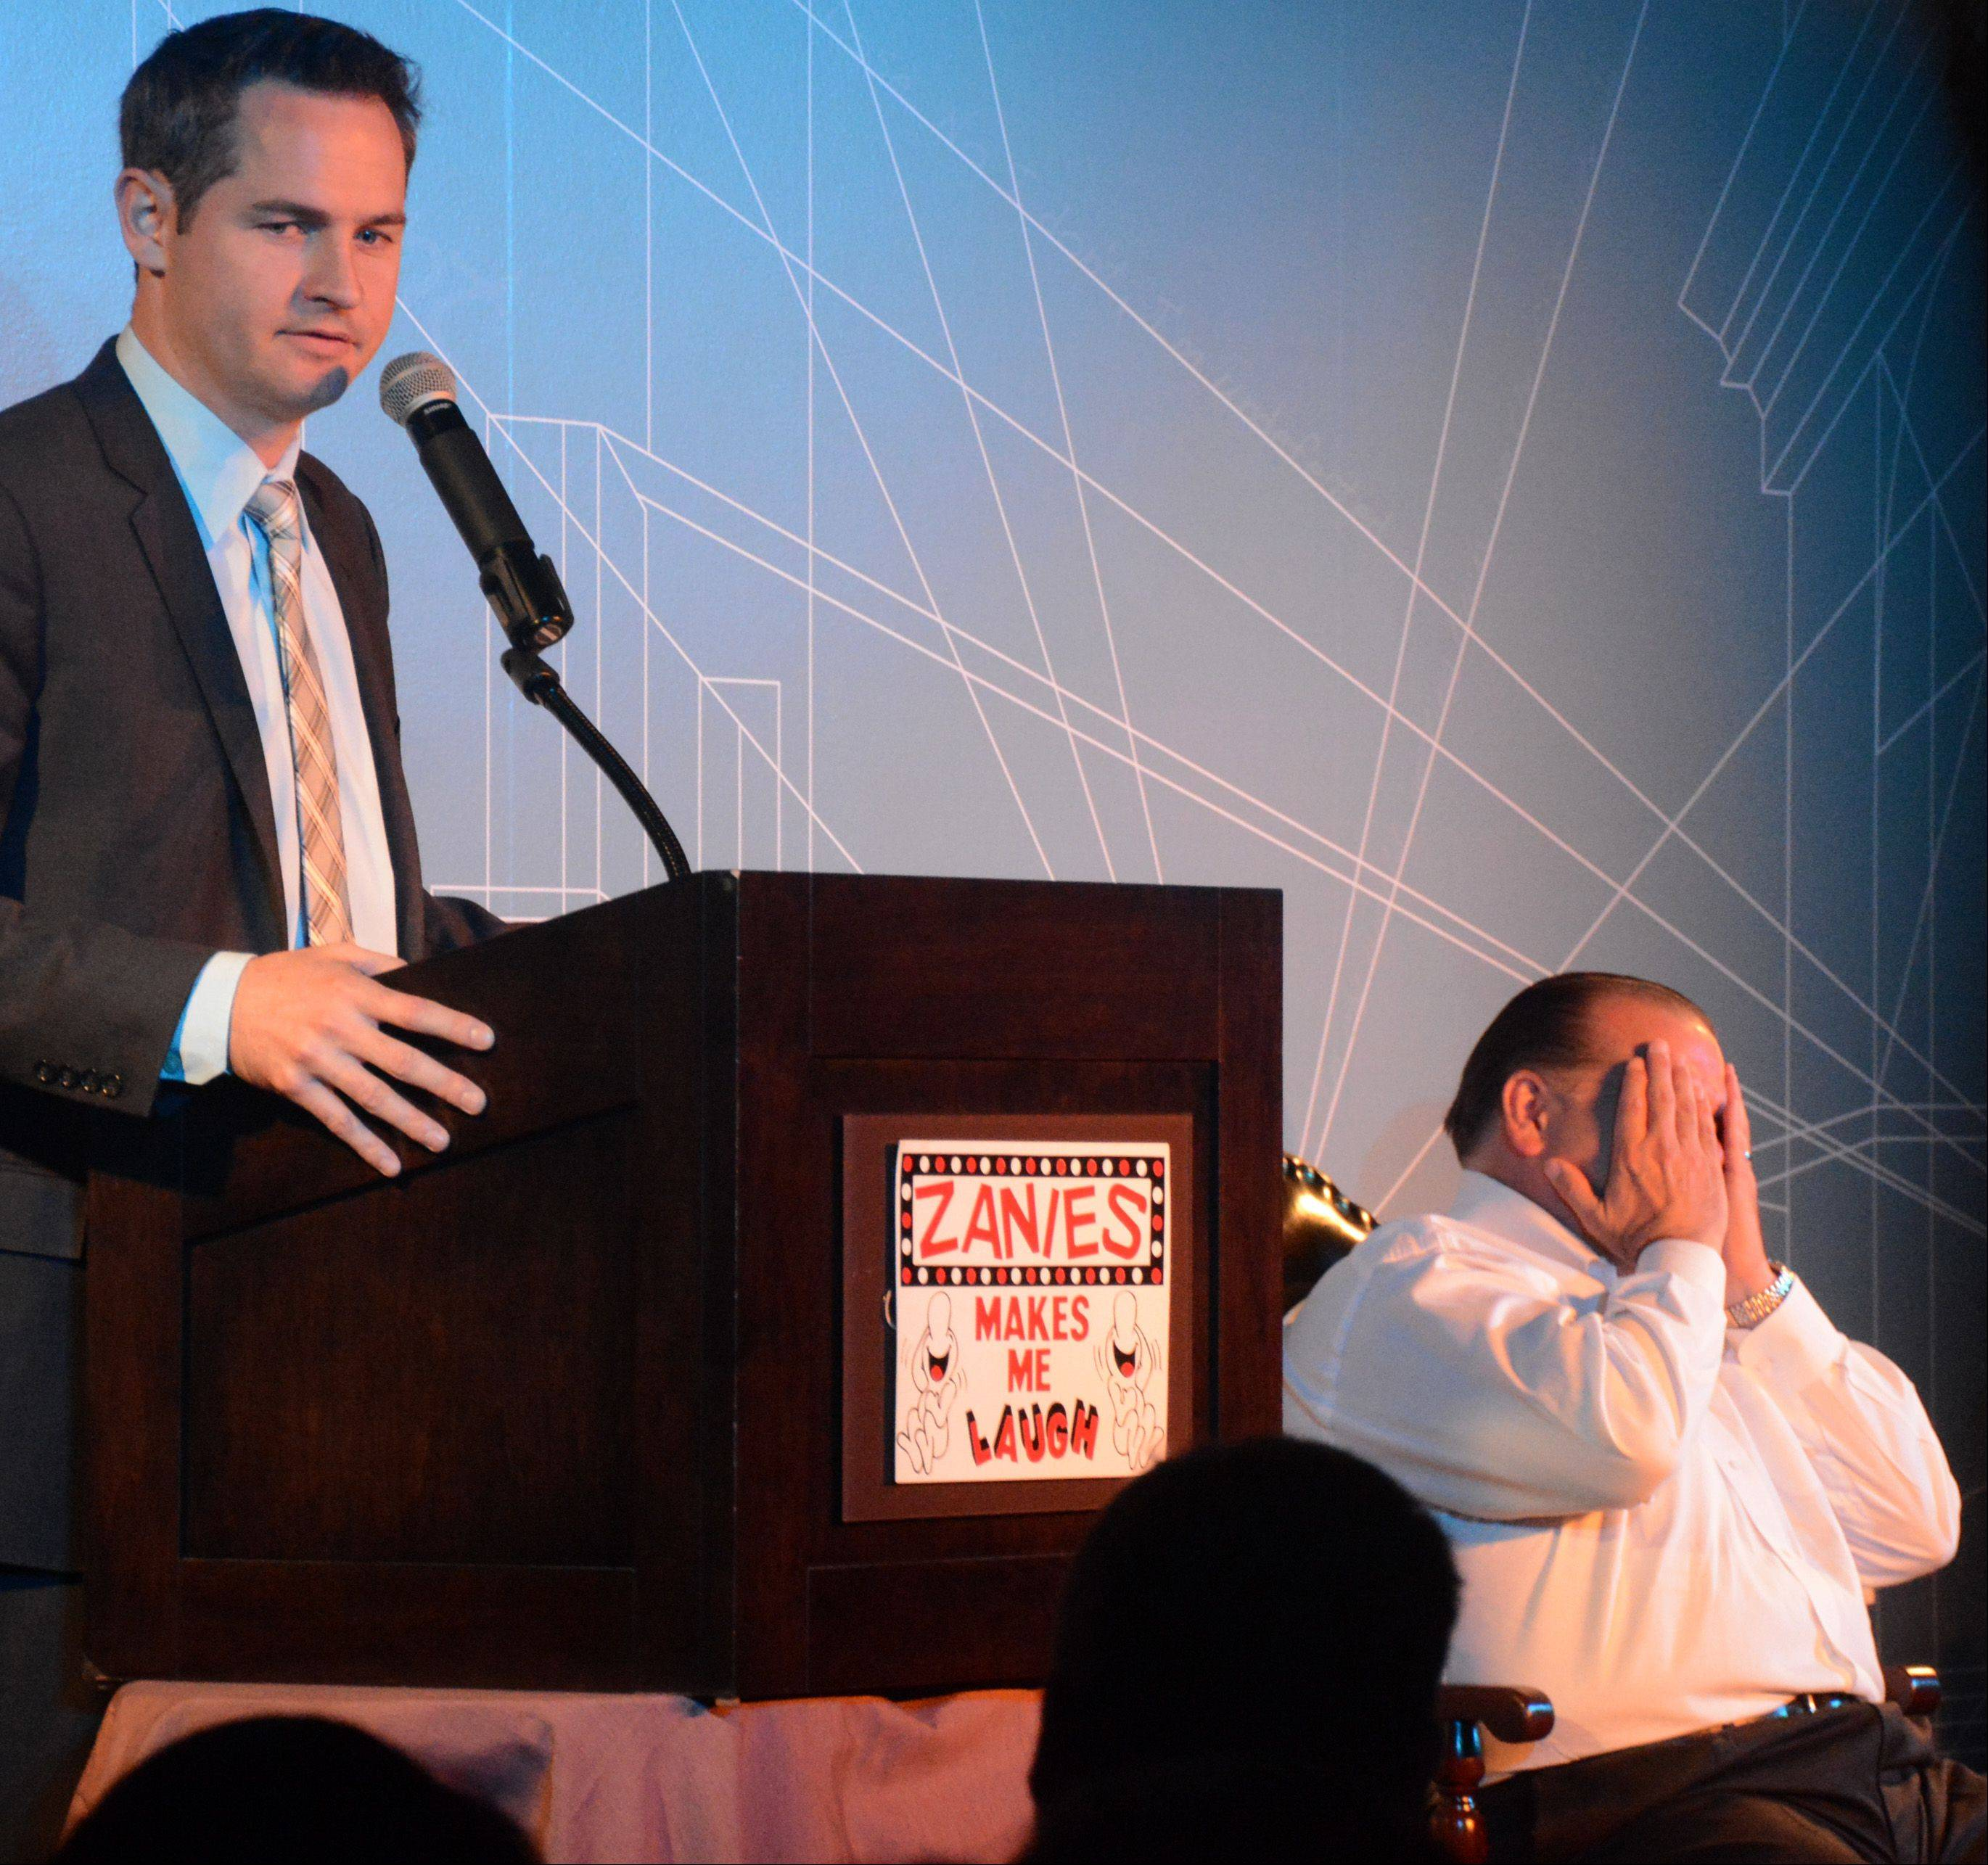 Rosemont Mayor Brad Stephens, right, covers his face as Pat McGann cracks a joke Saturday at a roast at Zanies Comedy Club in Rosemont. Proceeds from the event, which commemorates Zanies anniversary, benefit the Bear Necessities Pediatric Cancer Foundation